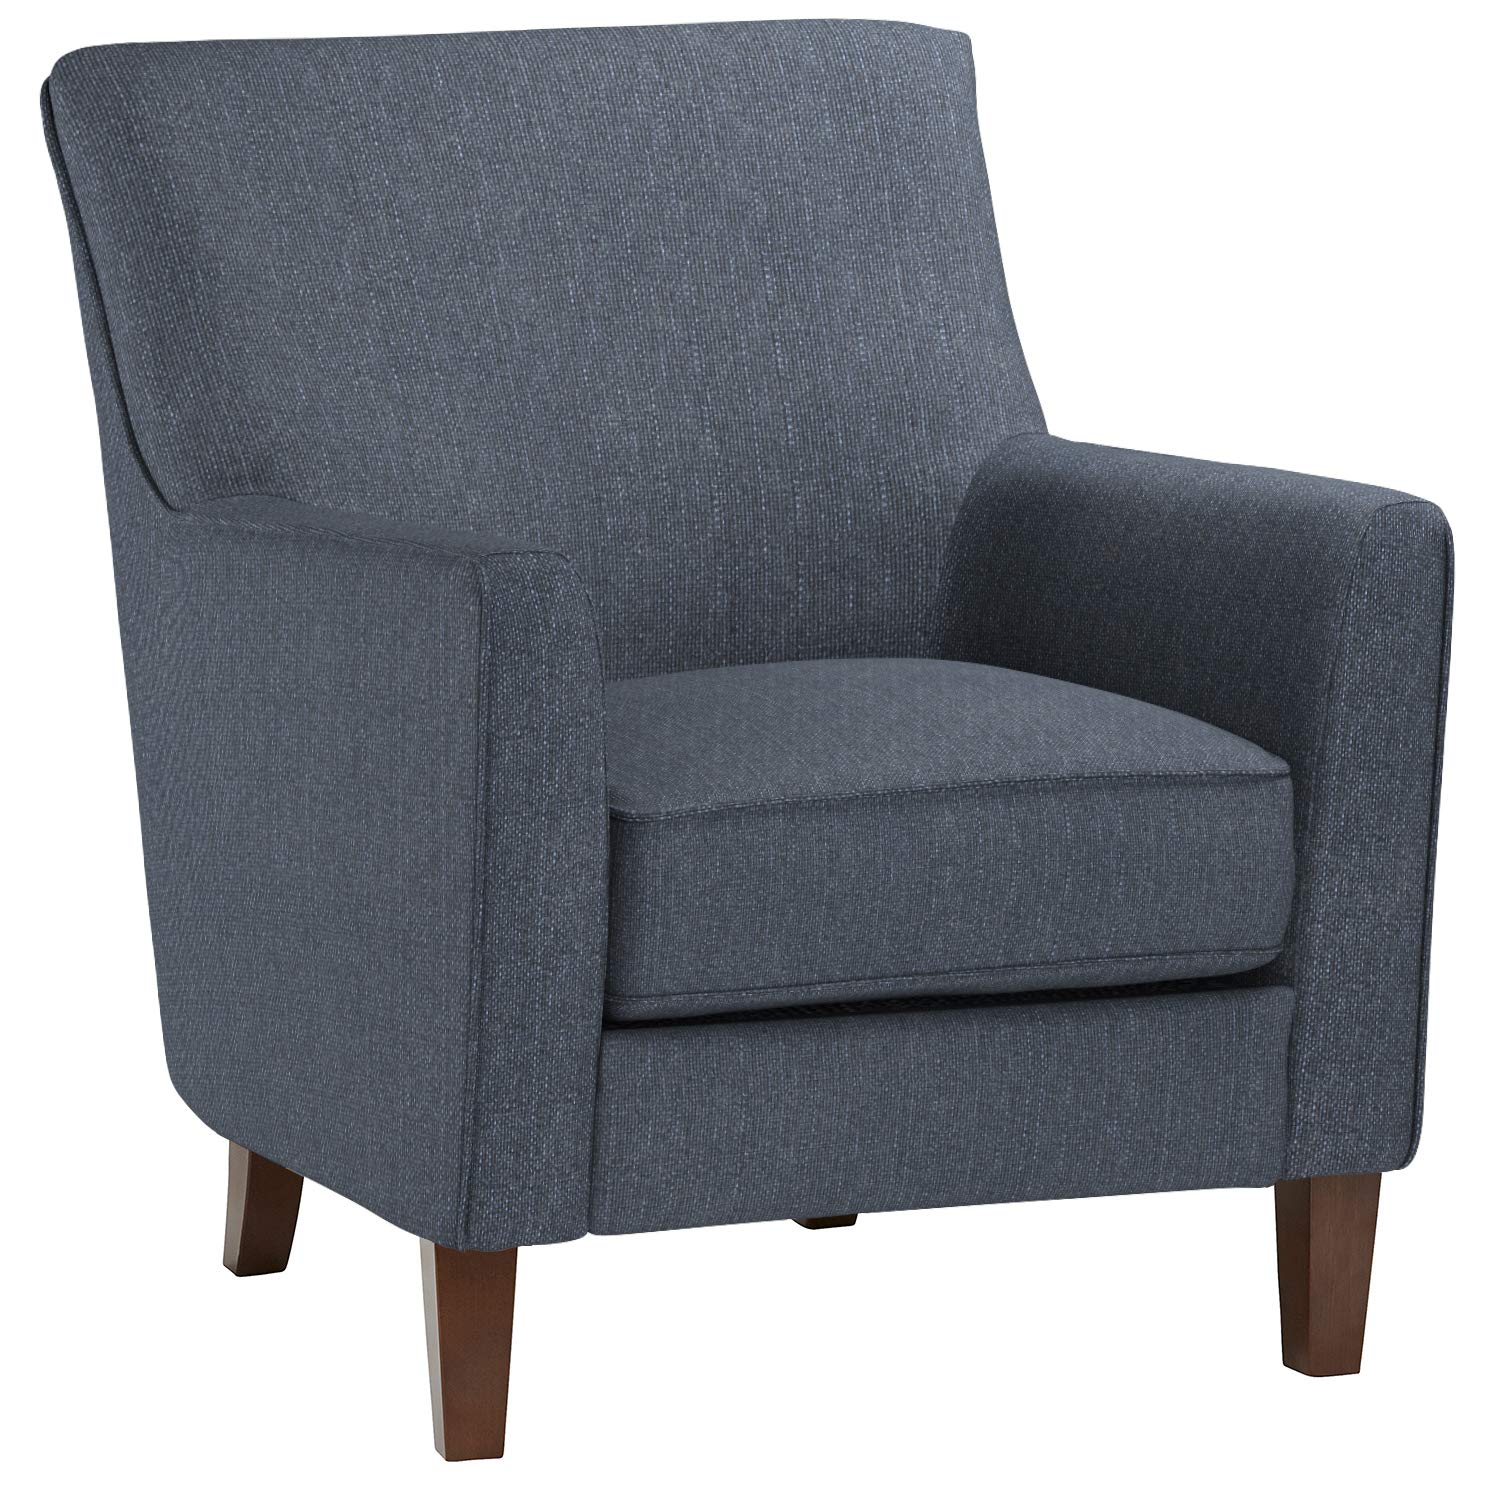 "Stone & Beam Cheyanne Modern Living Room Accent Arm Chair, 30.7""W, Blue"